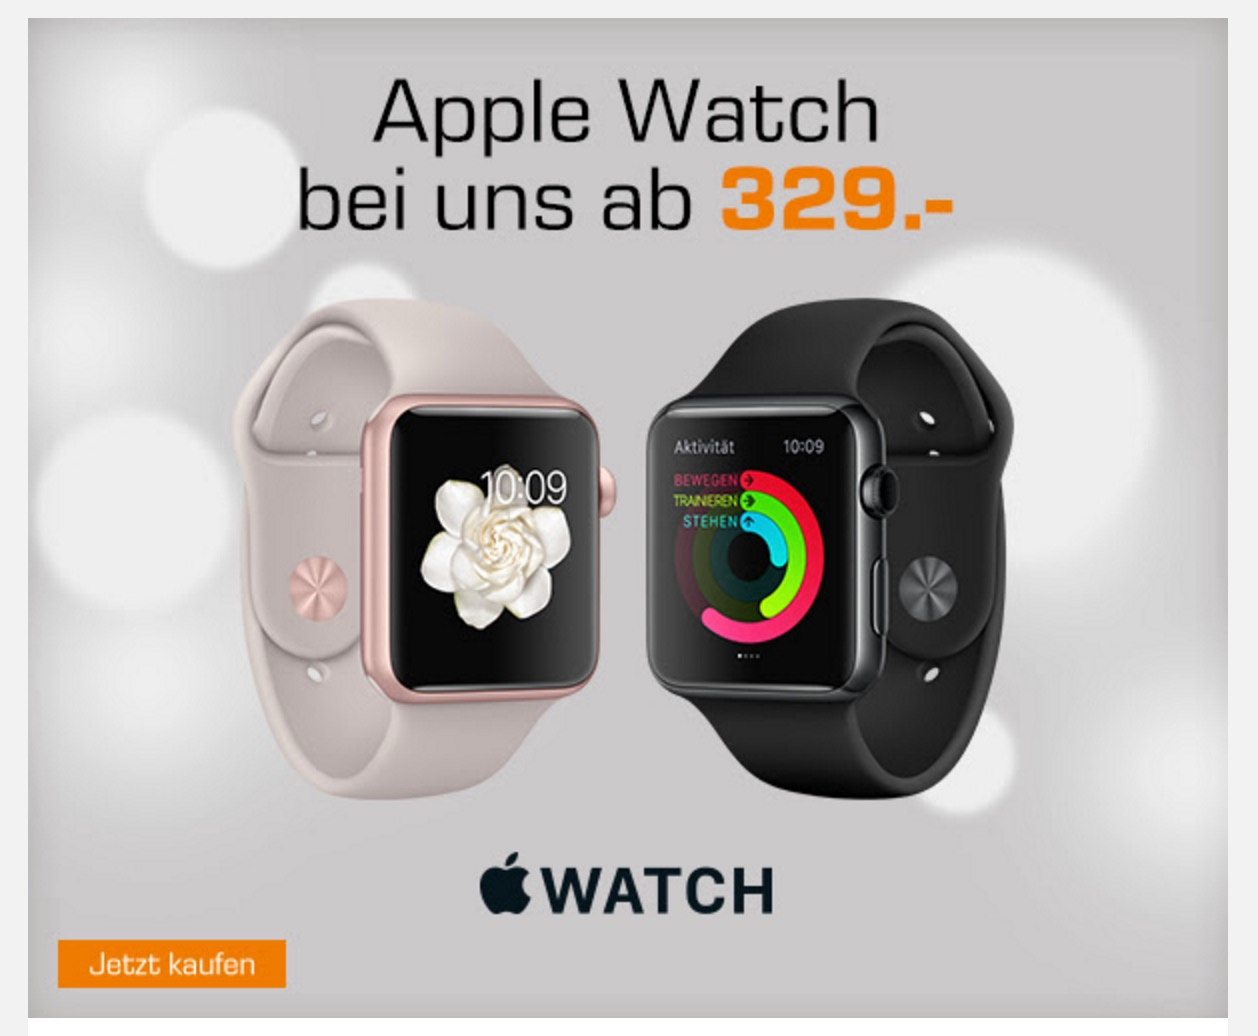 Apple Watch im Angebot